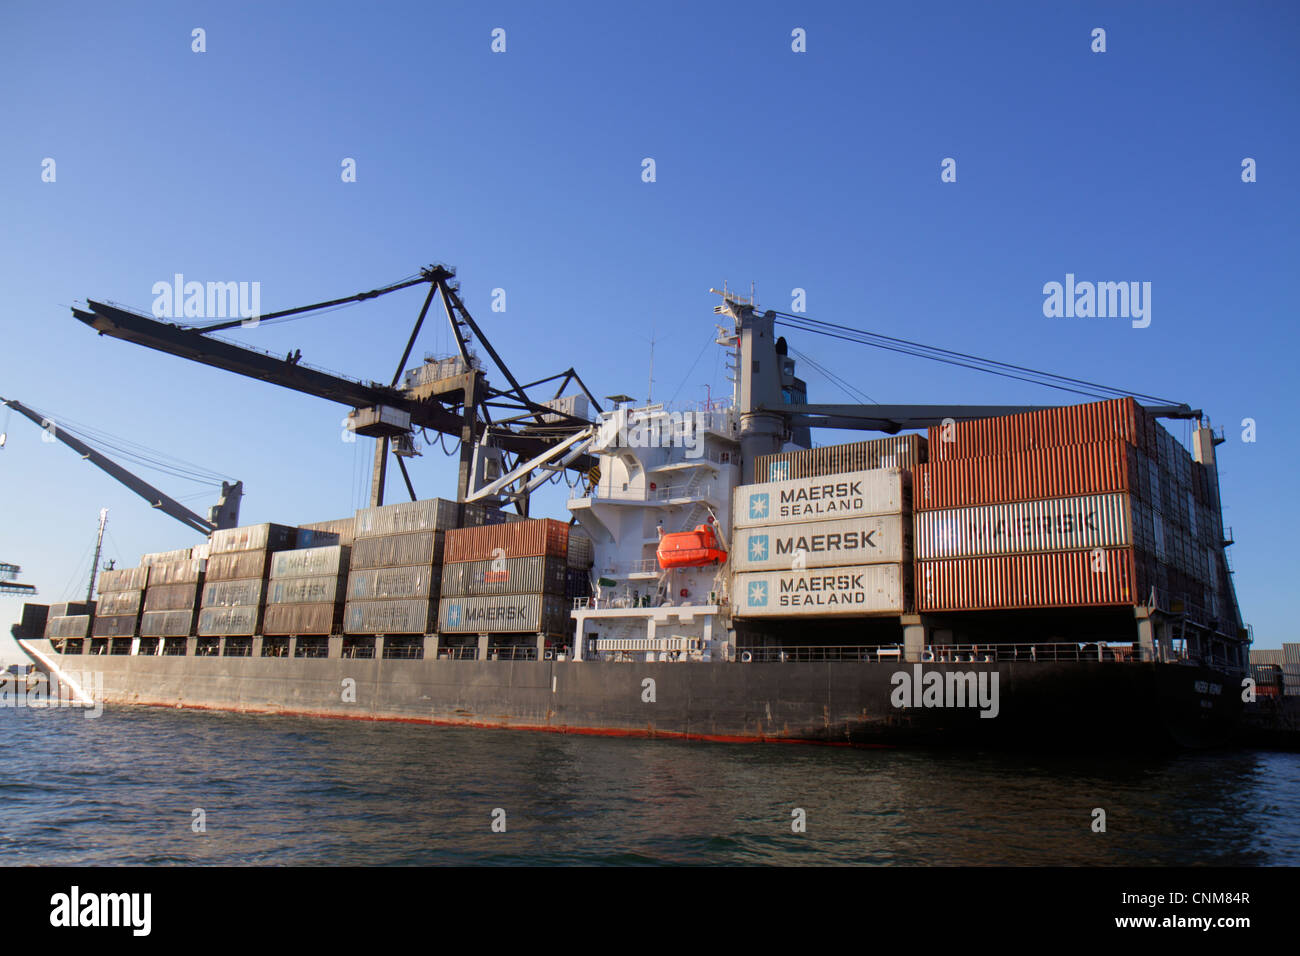 Miami Florida Biscayne Bay Dodge Island Port of Miami cargo container lift cranes ship Maersk Sealand - Stock Image